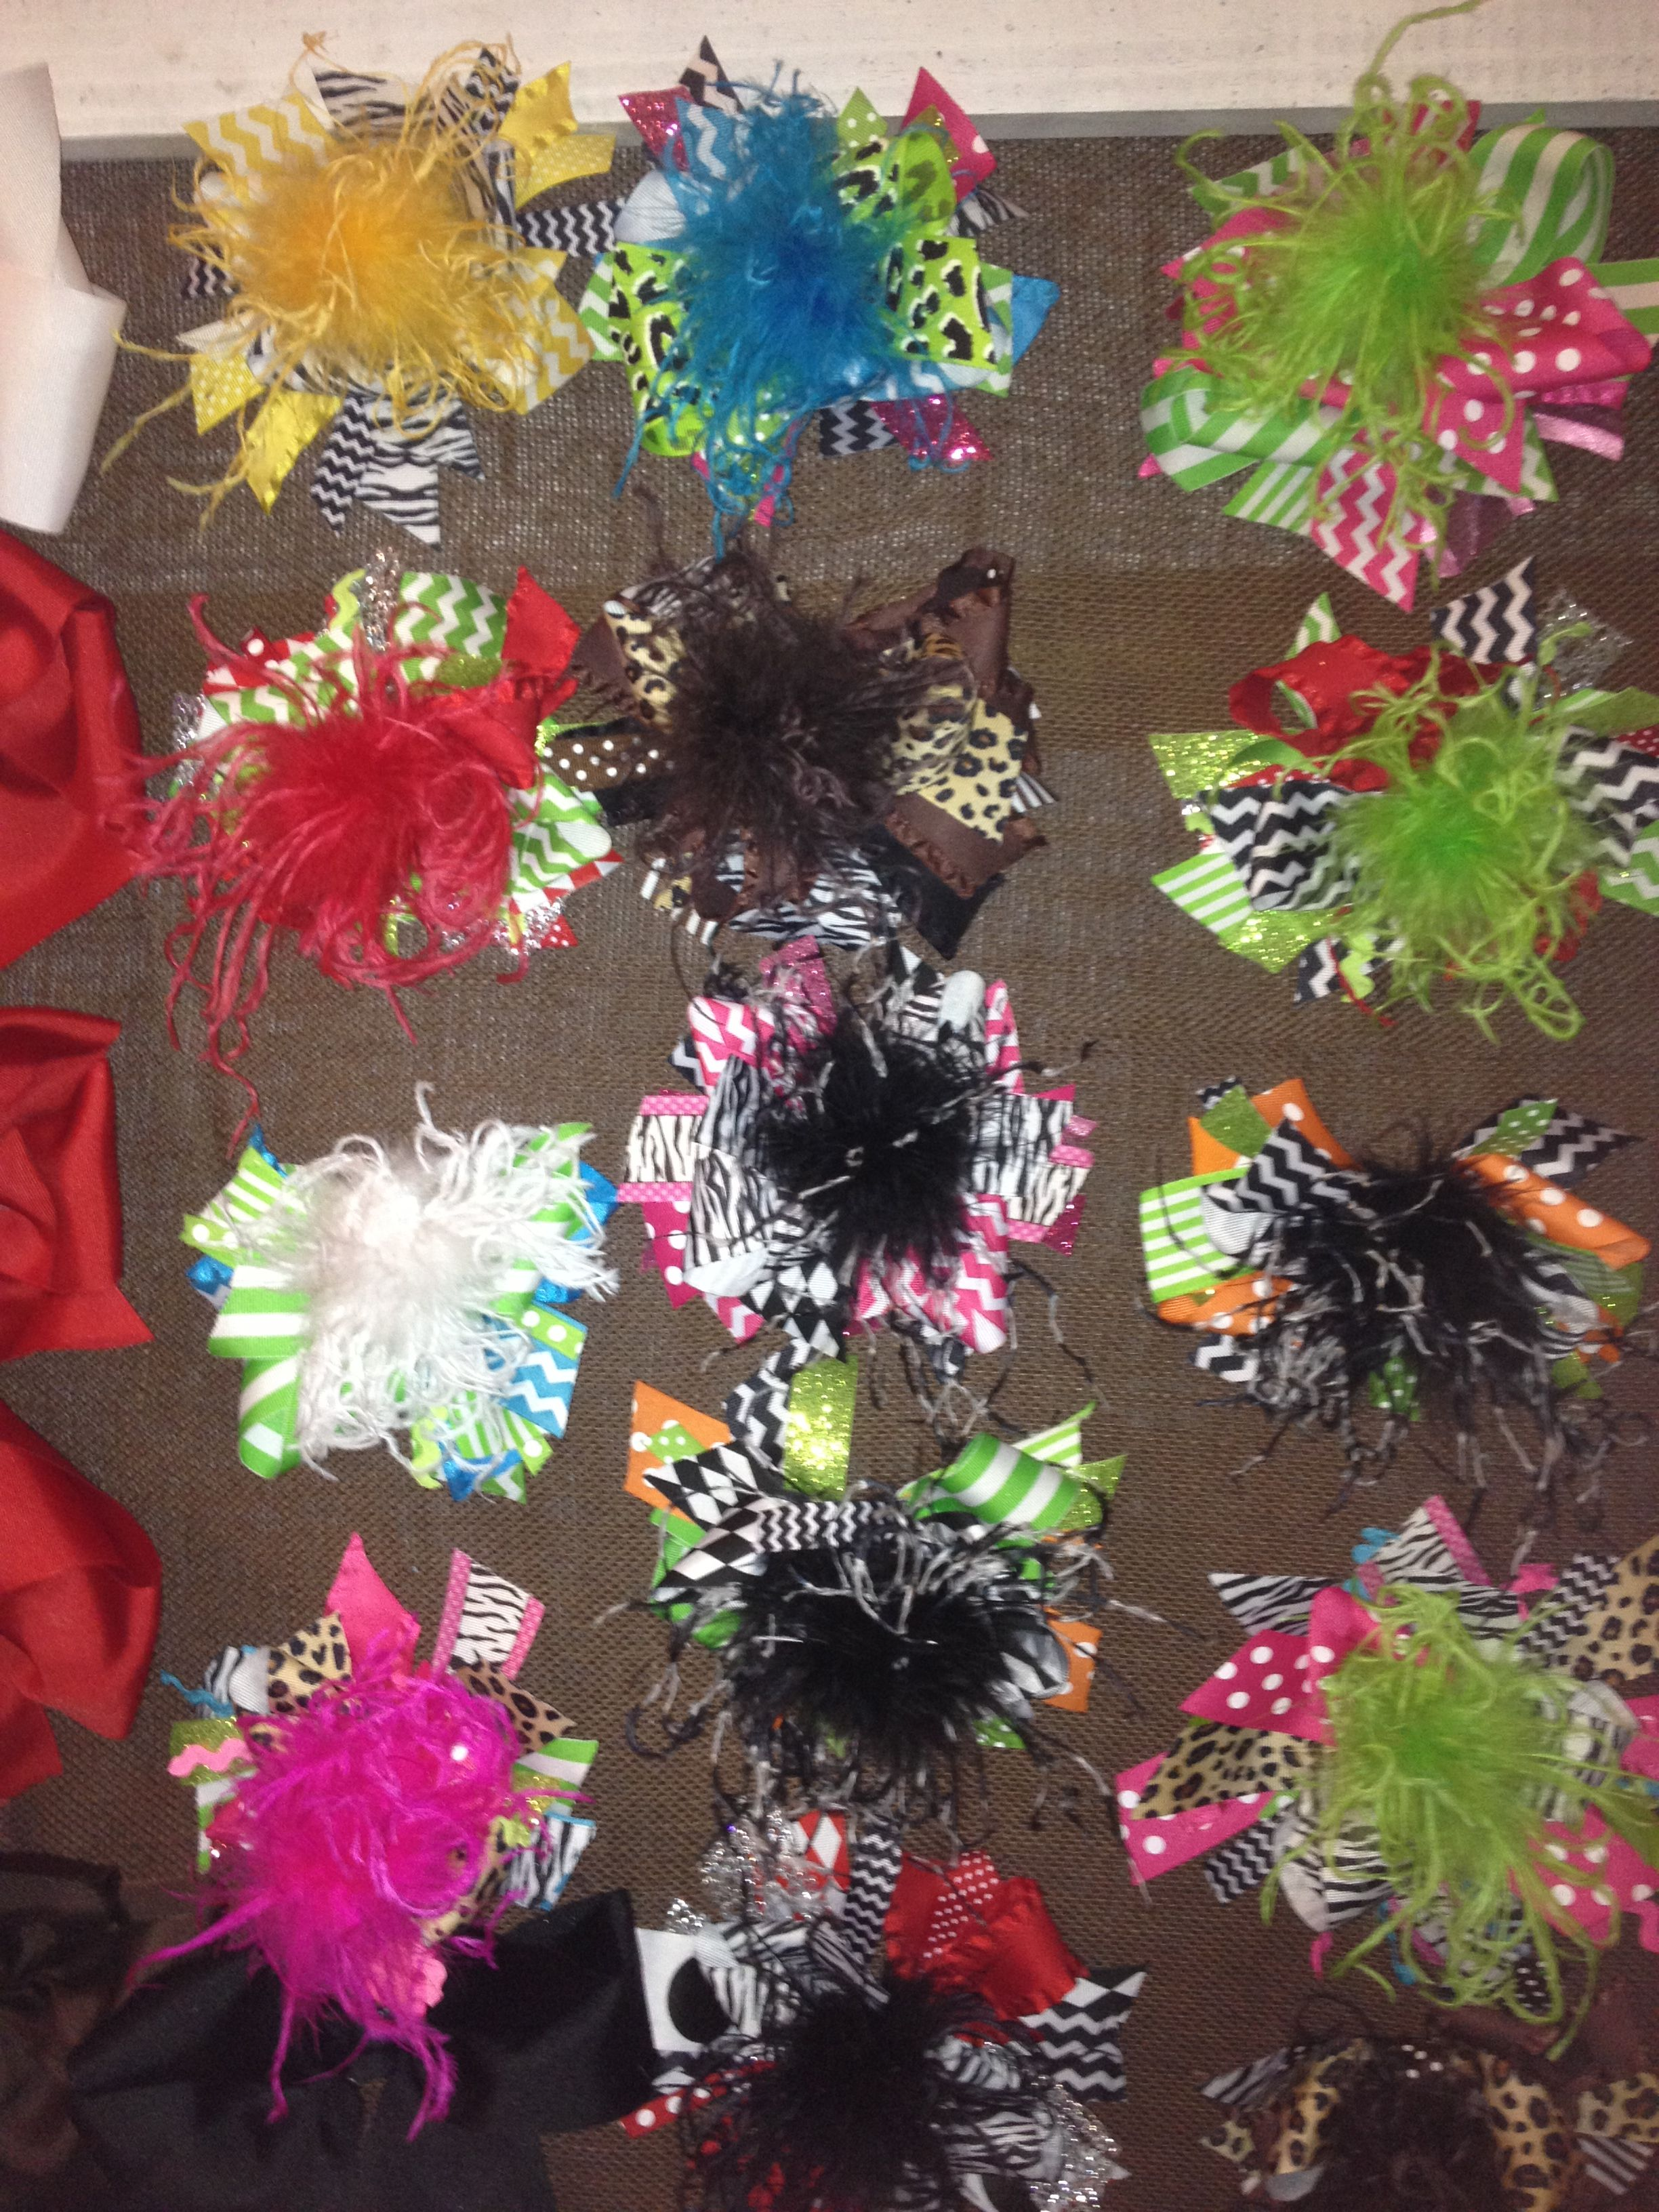 In love with over the top hairbows made these for a festival